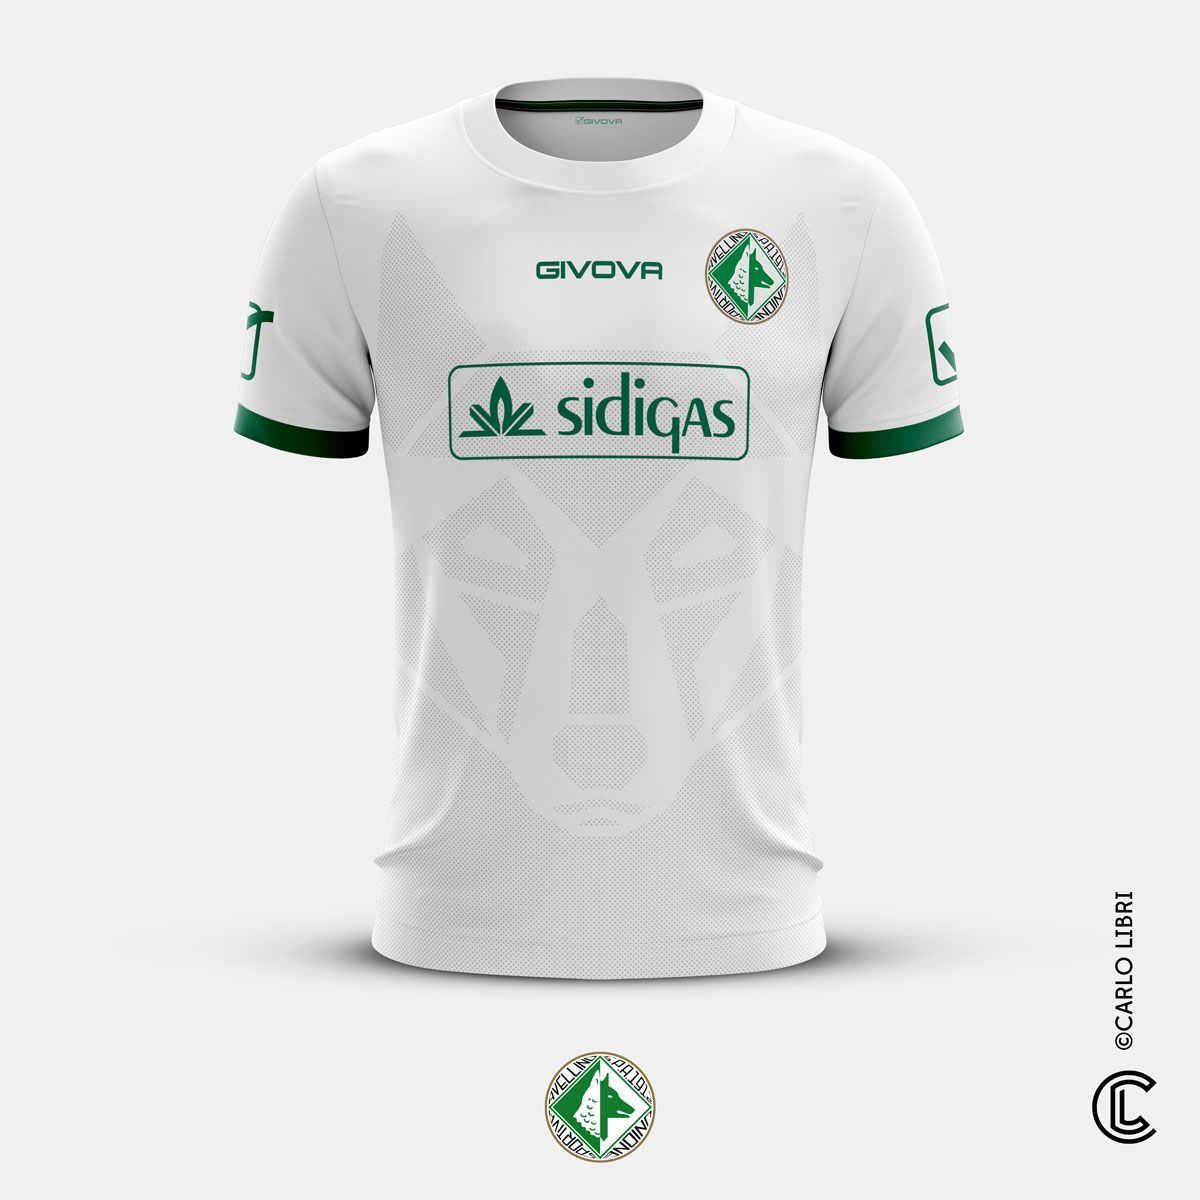 US Avellino 1912 - Kit Concept 2018 2019 on Behance  3437f098704a3